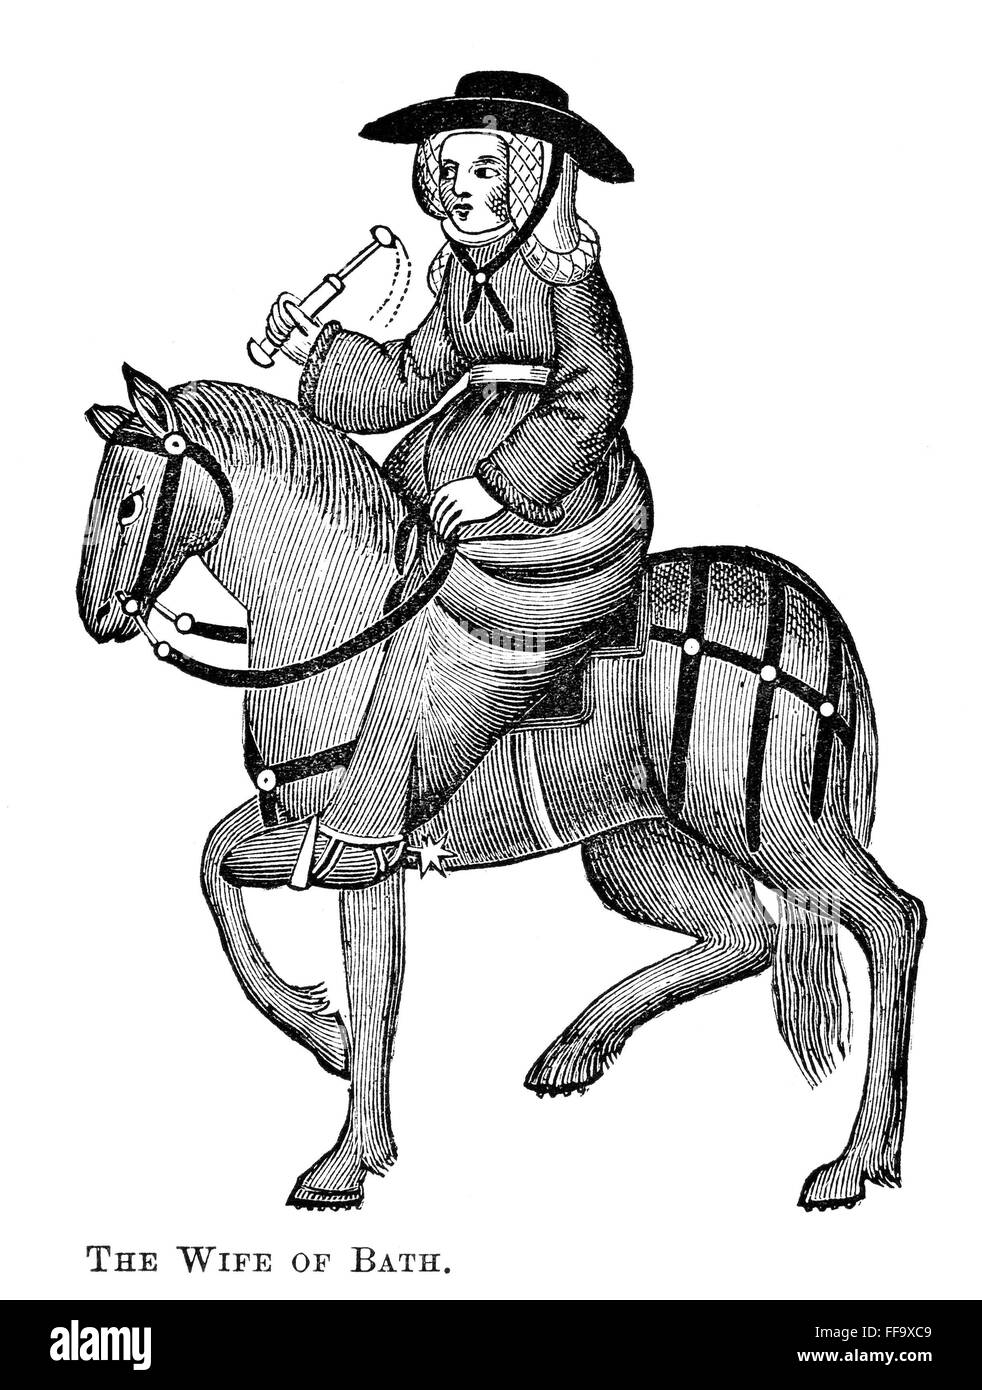 an analysis of the character of the wife of bath from the canterbury tales The wife of bath starts the marriage group as gl kittredge called it (even though other marriages appear in the canterbury tales fragments), involving the clerk, the merchant, the franklin more immediate is a wife of bath group in which the clerk is quiet and waits his time.